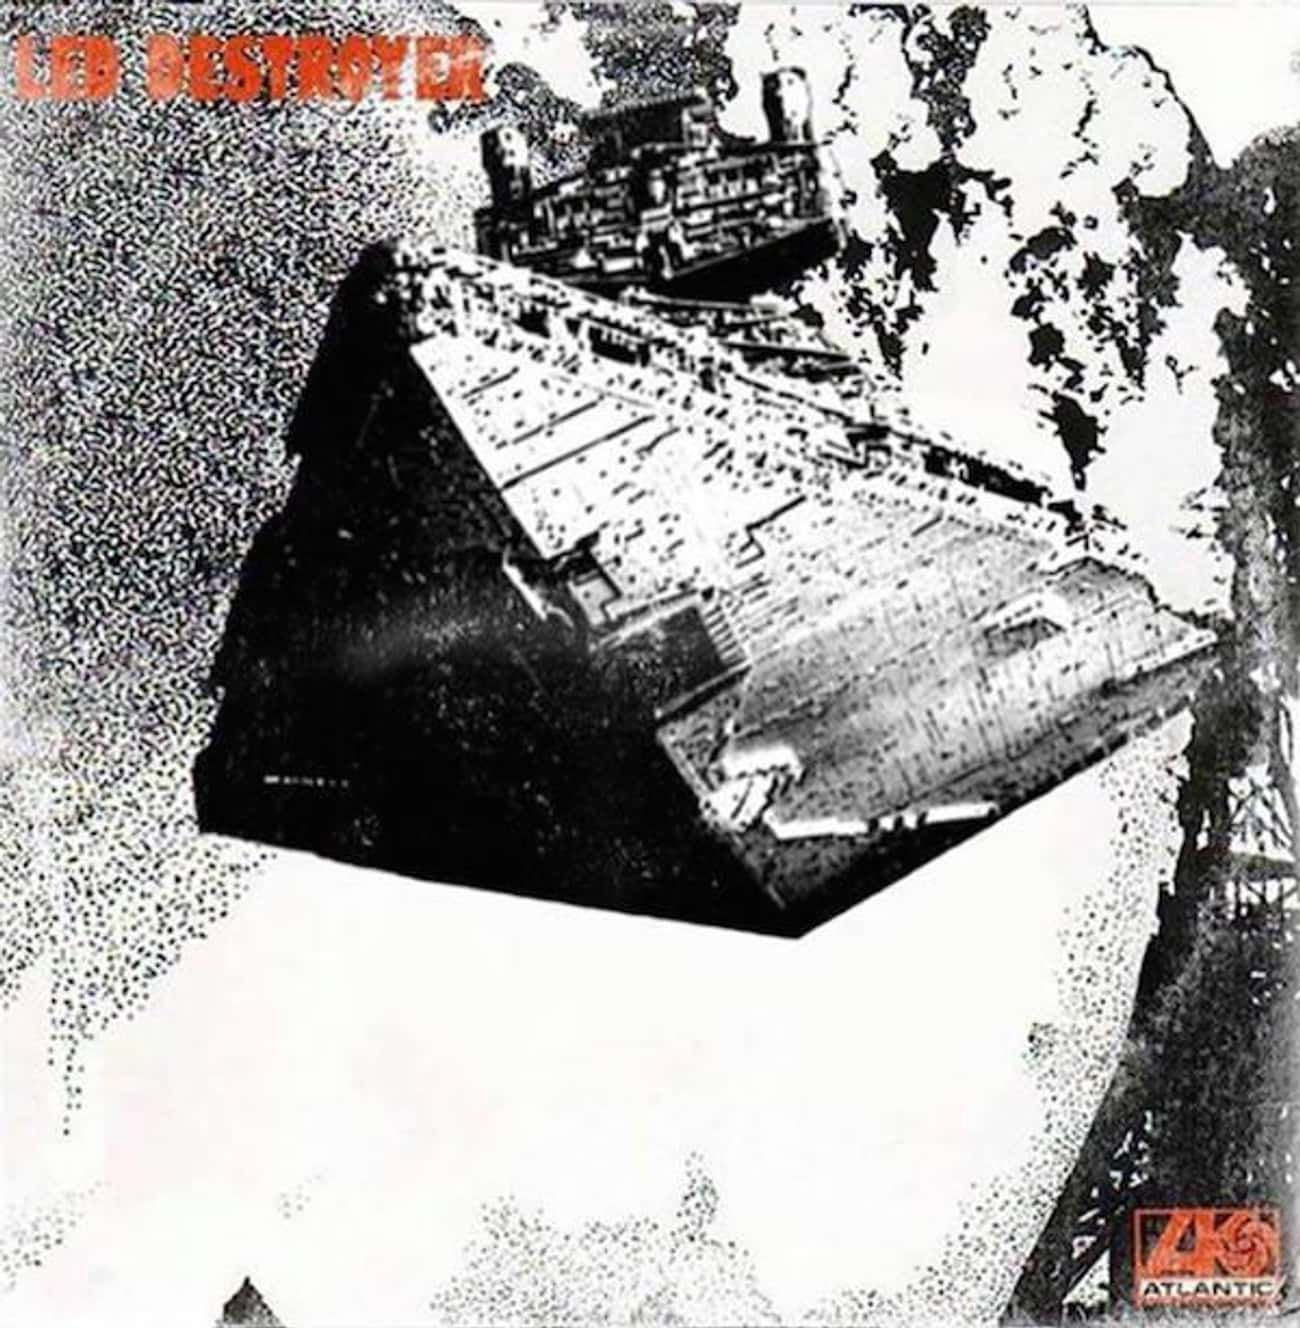 Led Zeppelin - I is listed (or ranked) 2 on the list Iconic Album Covers Reimagined with Star Wars Characters